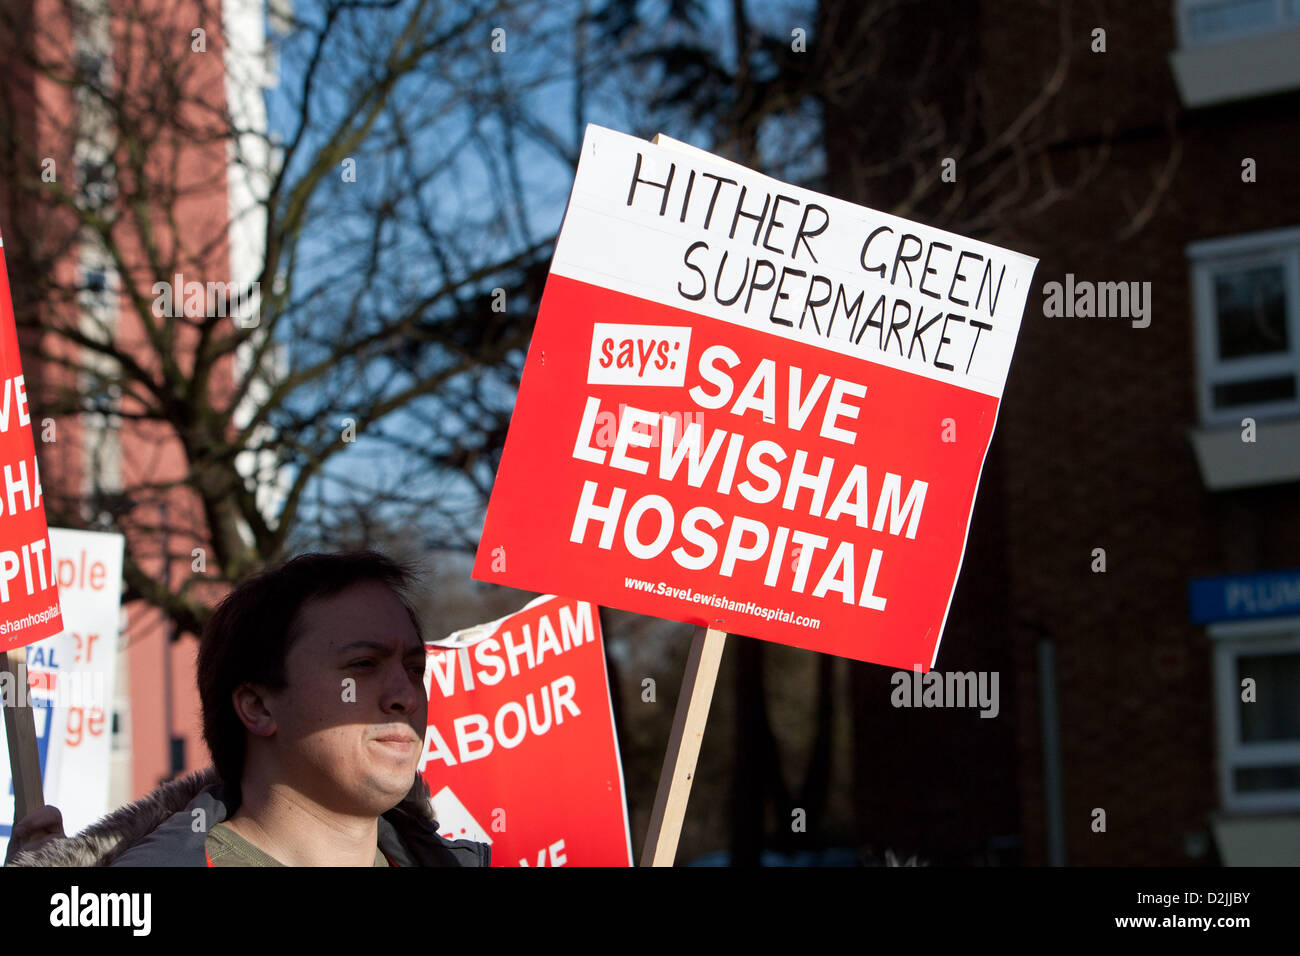 London UK. 26th January 2013. . Thousands of local people marching to a rally in opposition to hospital closures. - Stock Image